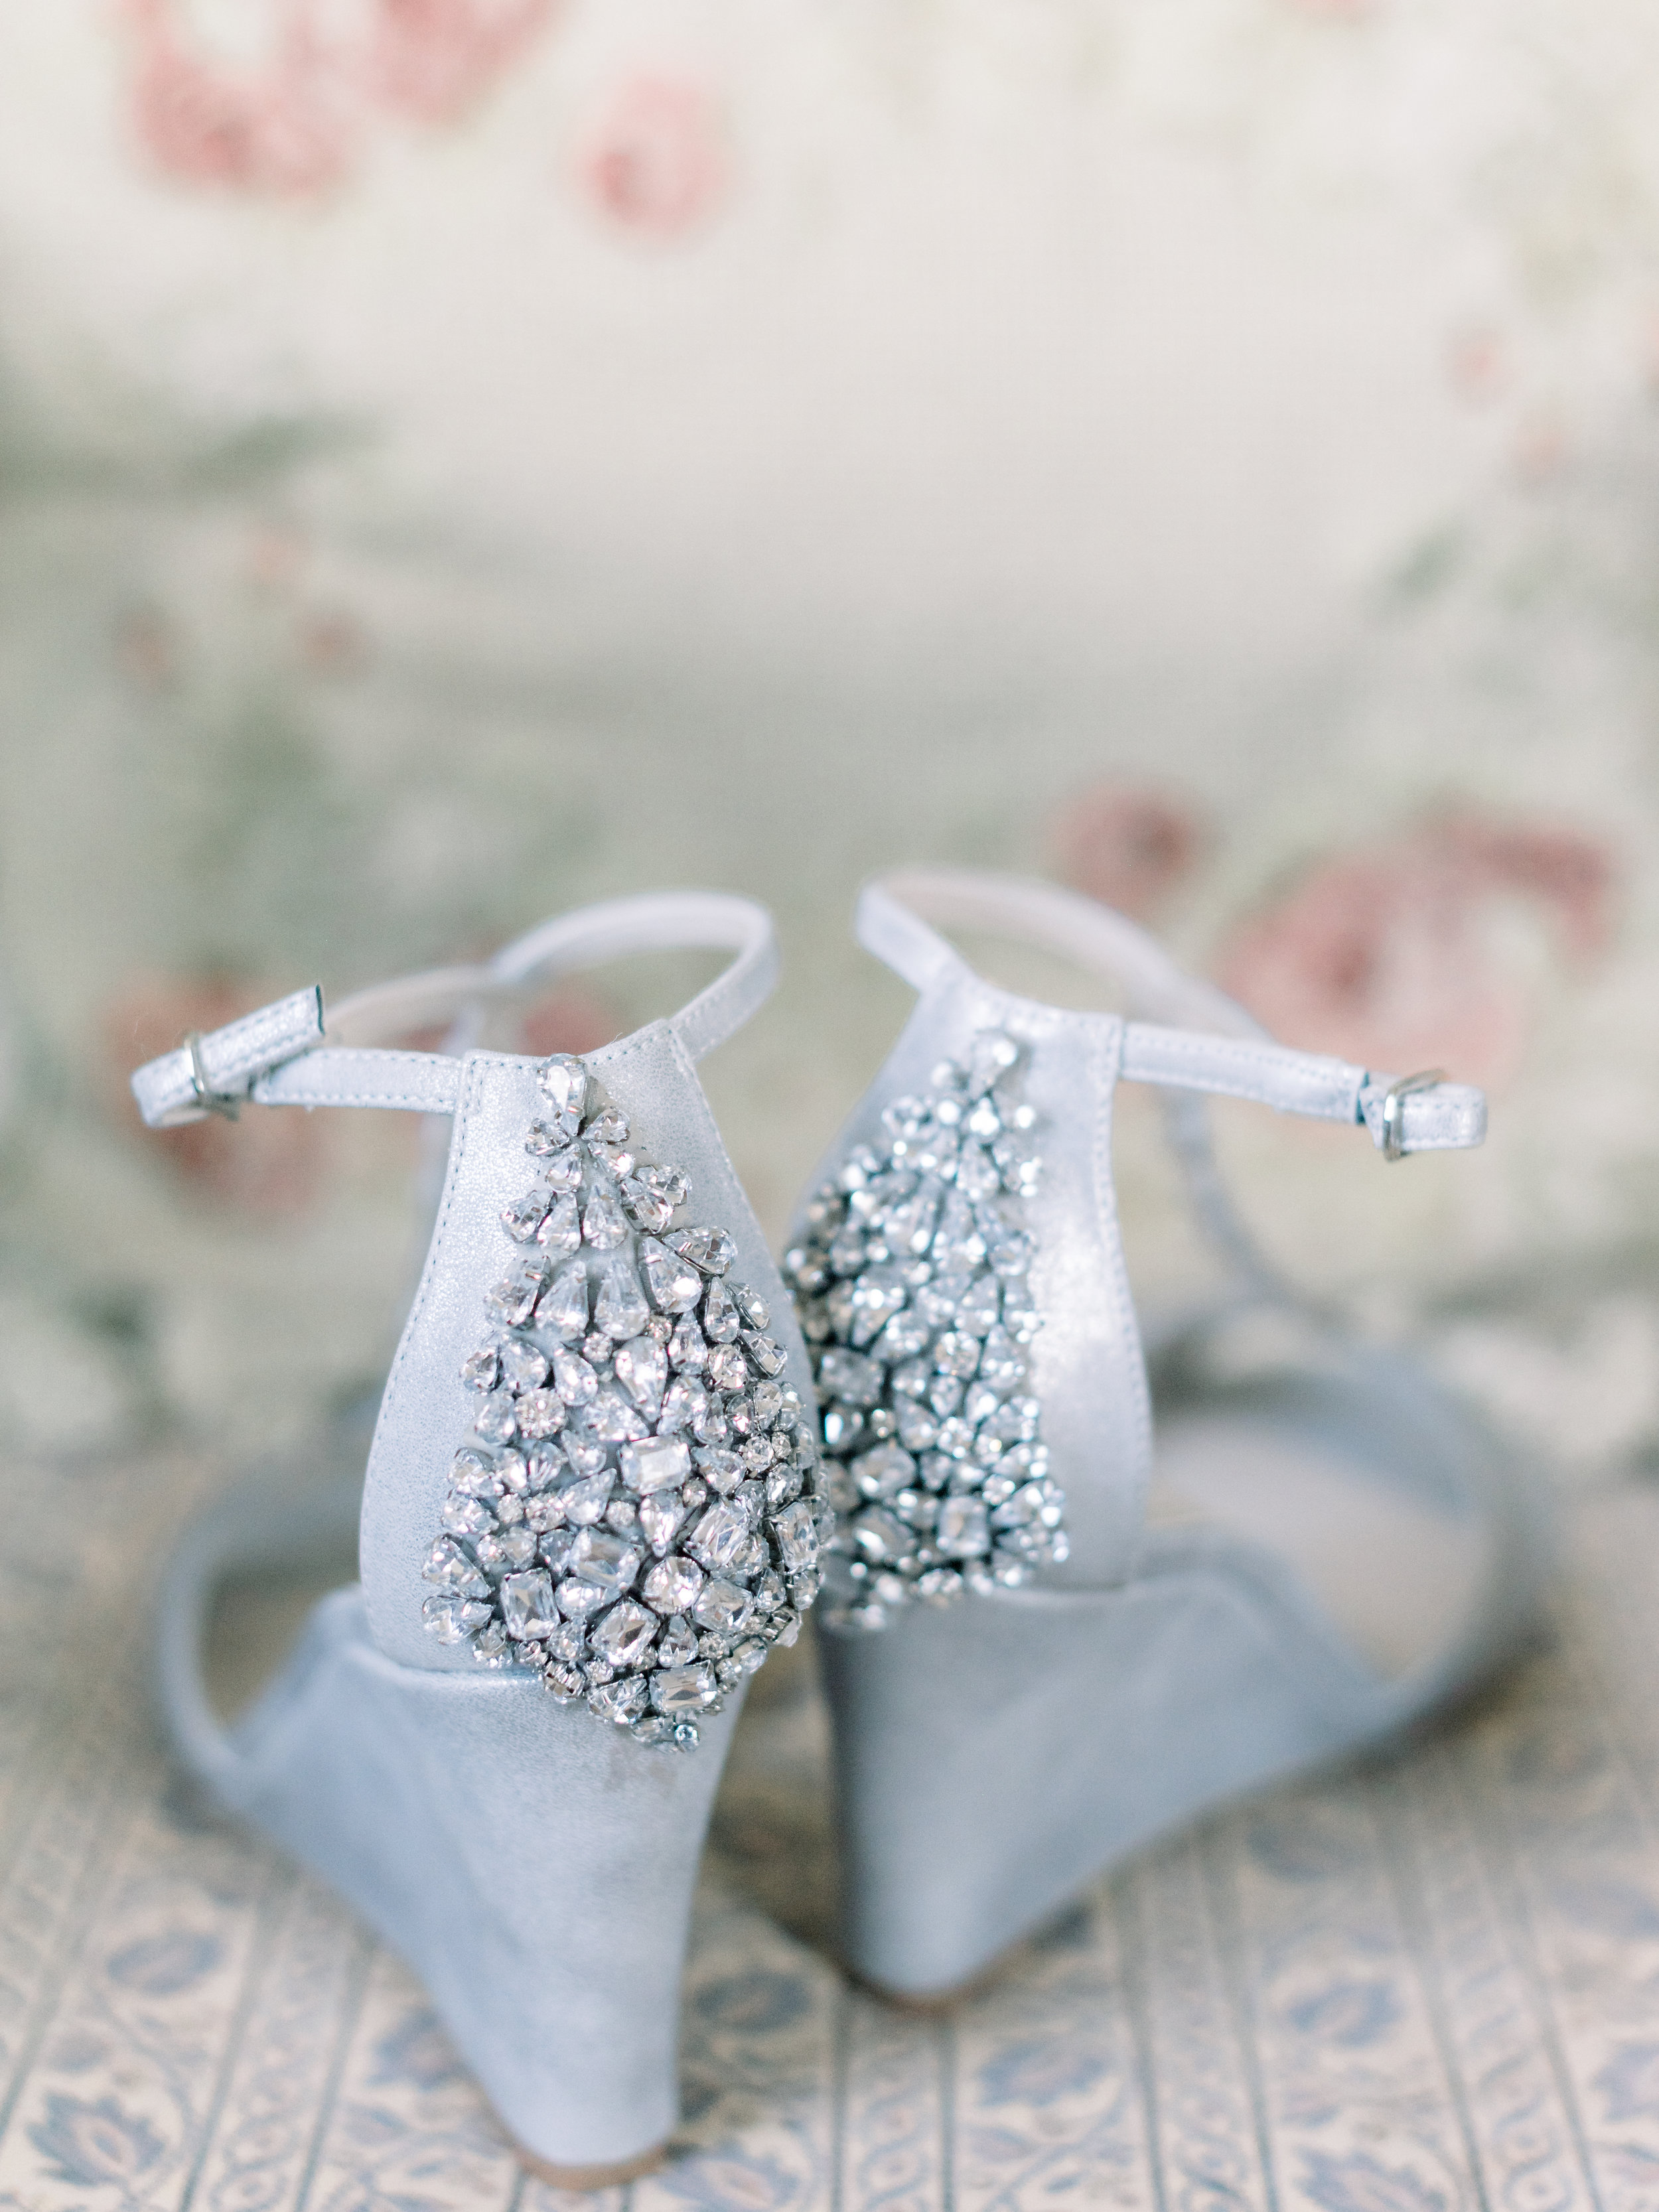 wedding-shoes-with-crystals.jpg